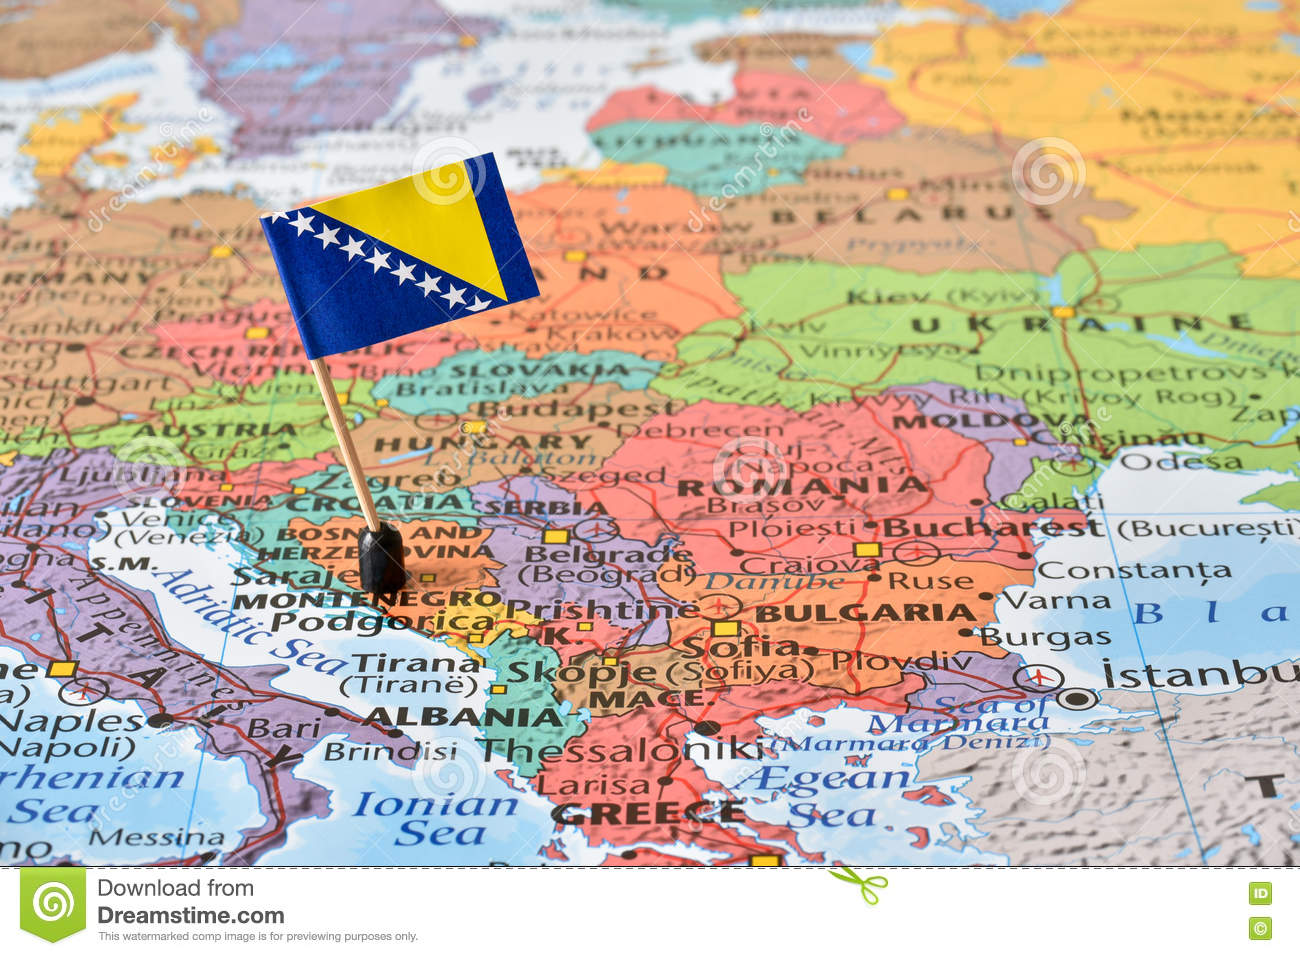 Map And Flag Of Bosnia And Herzegovina, Balkan Peninsula Stock Image ...